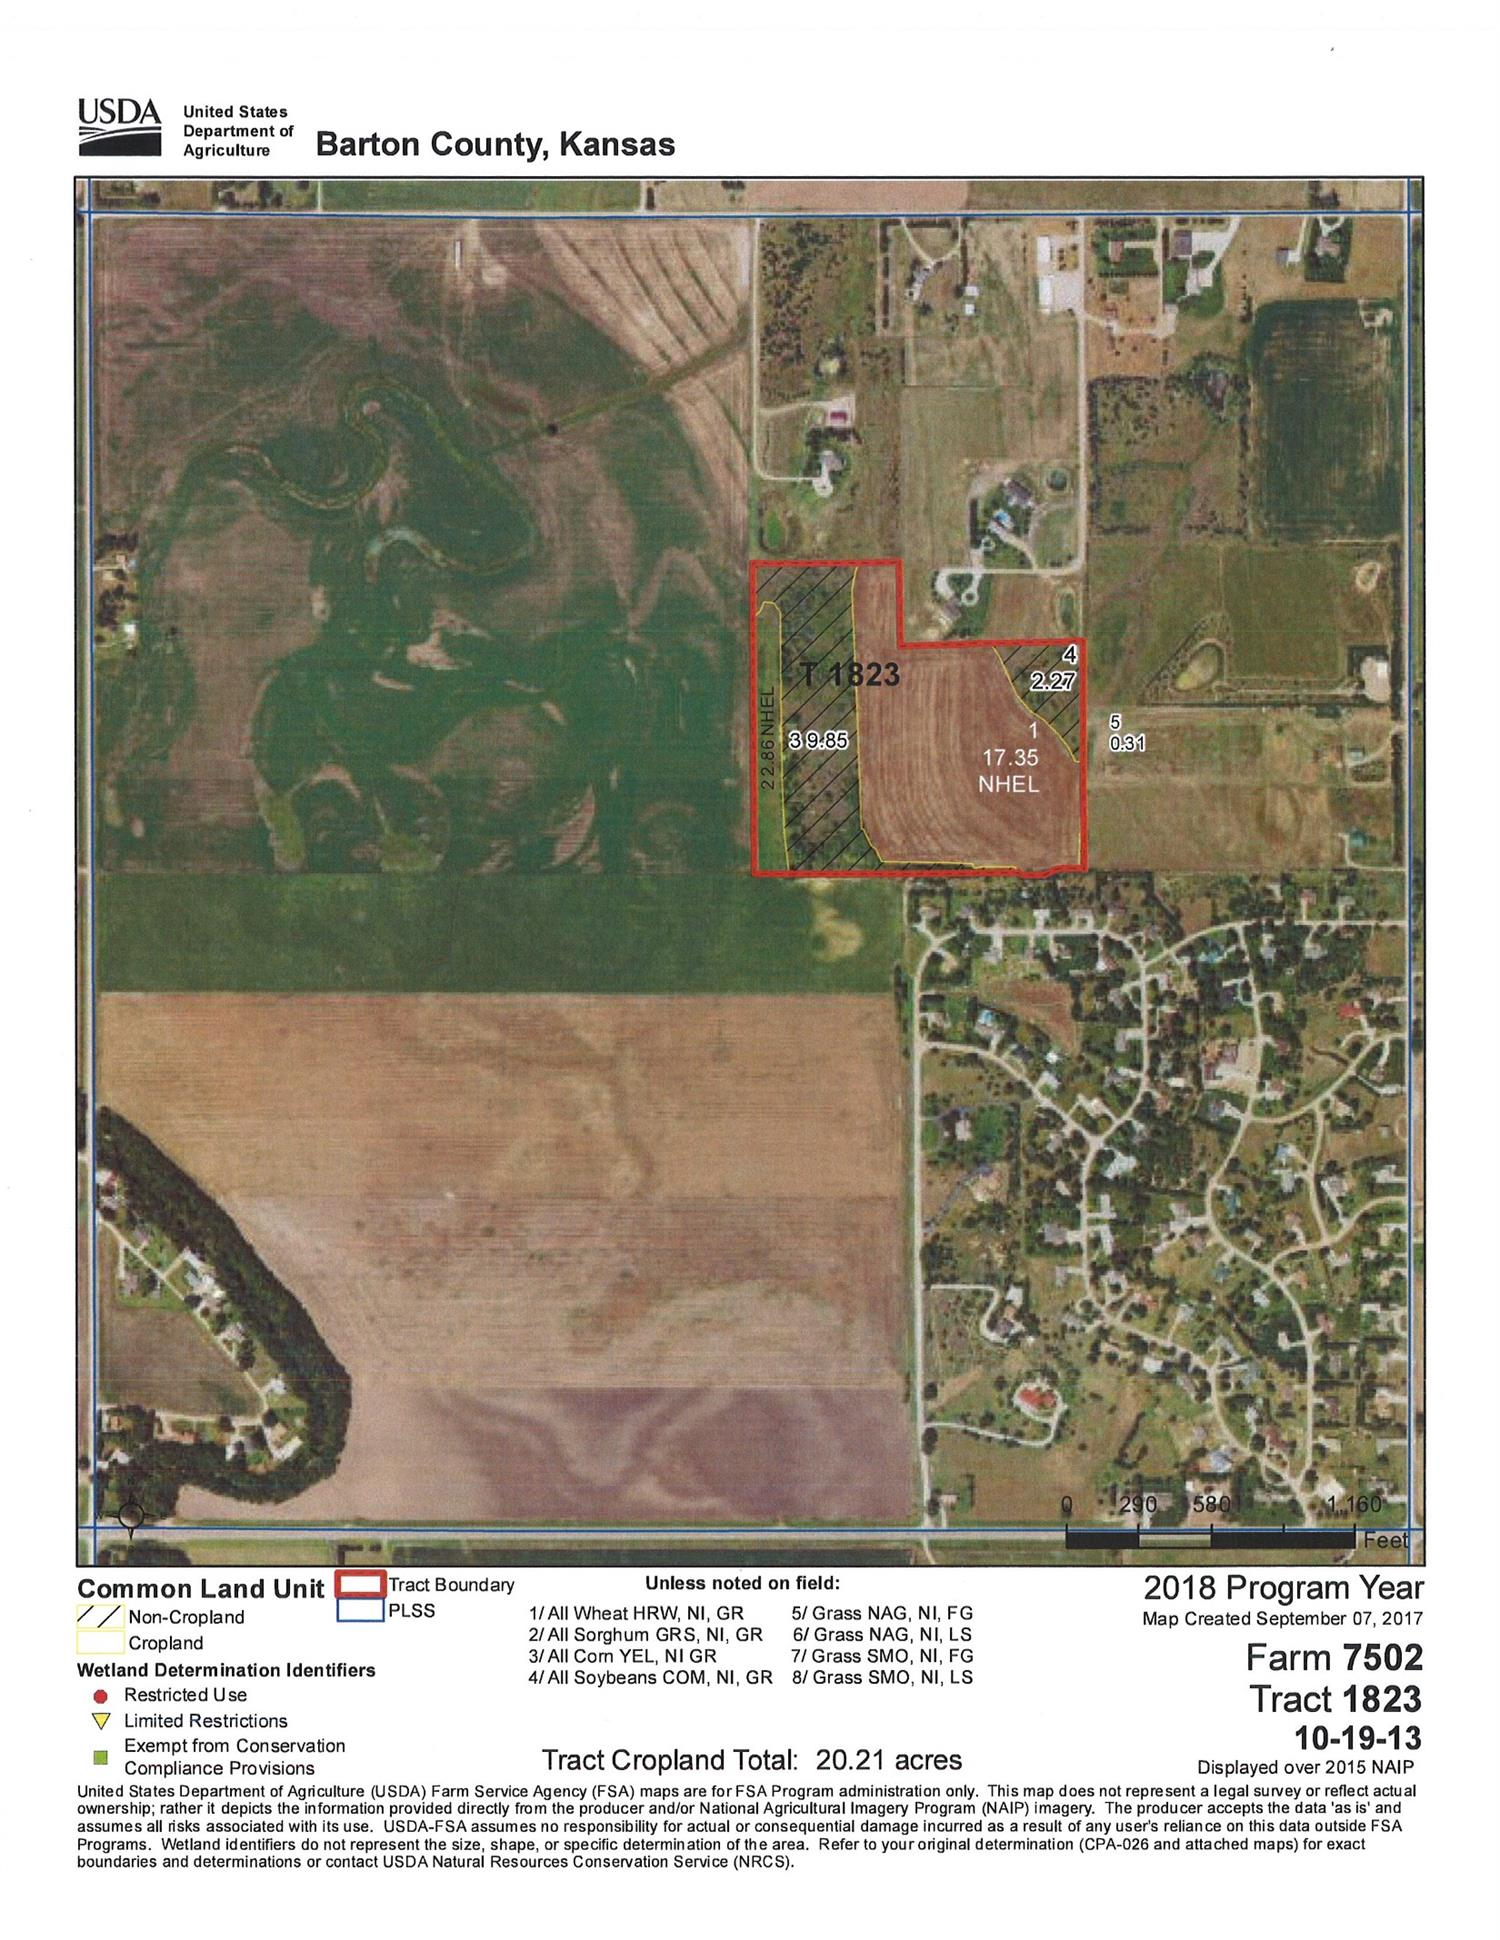 Perfect location for a new home site or hide away close to town.  A 35+/- acre tract of land just North of Bissells Point plus one lot in Bissells Point.  The tract consists of 20.21+/- acres of cultivated land.  12.12+/- acre of expired CRP and trees, with balance in roads.  350 Point Drive, Great Bend - Lot Dimensions 150' x 219.4' with water hookup.